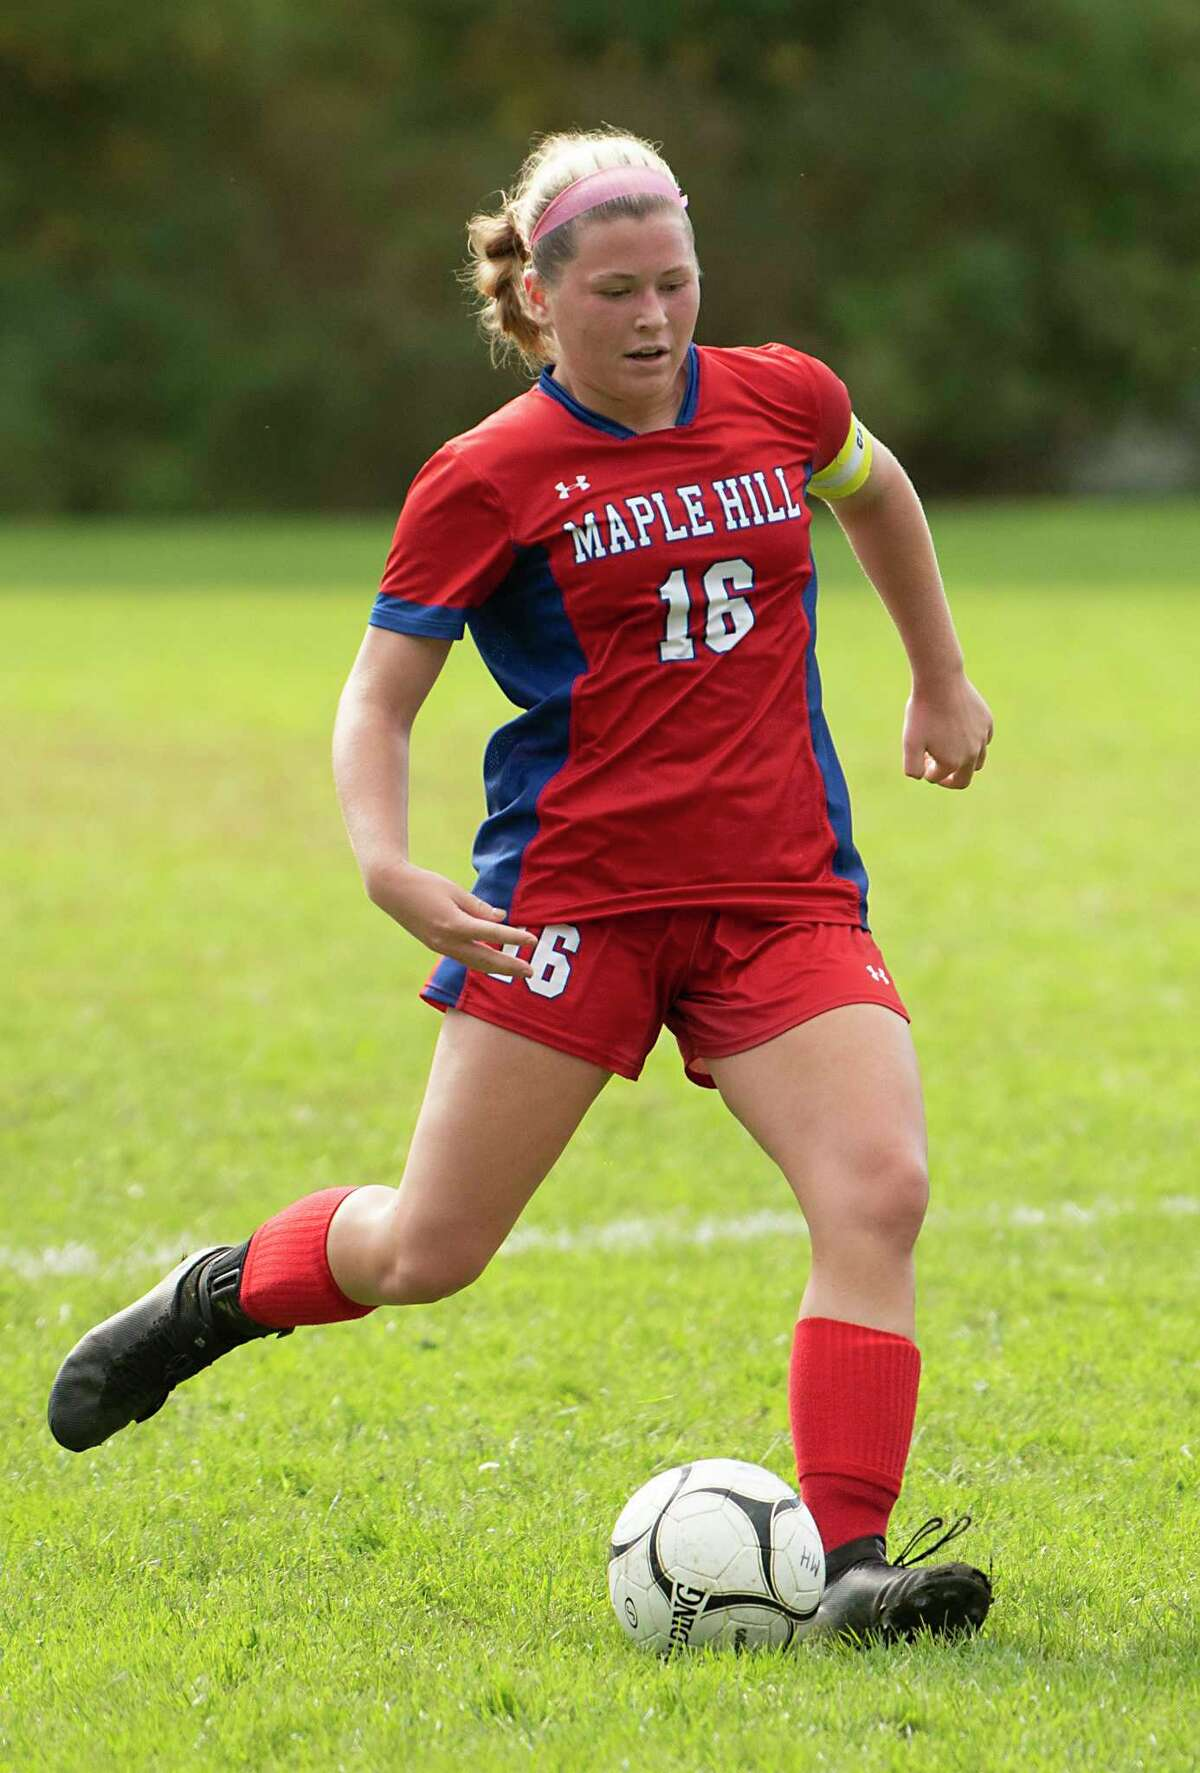 Maple Hill's Alayna Fletcher kicks the ball during a soccer game against Cambridge on Monday, Oct, 11, 2021 in Schodack, N.Y.